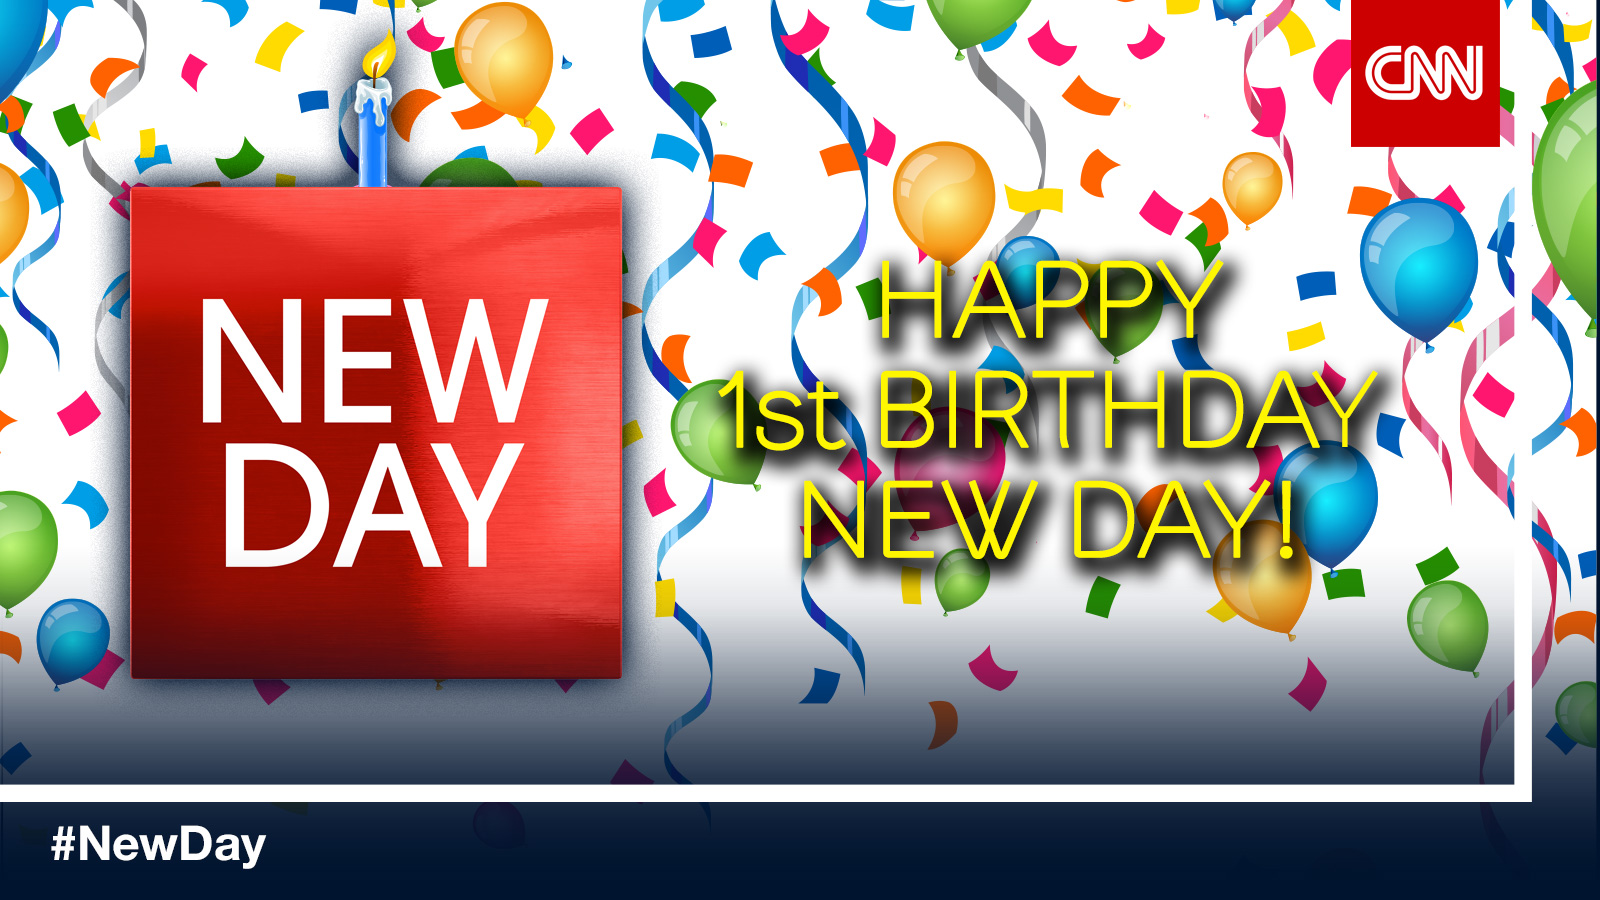 Happy 1st Birthday 'New Day'!